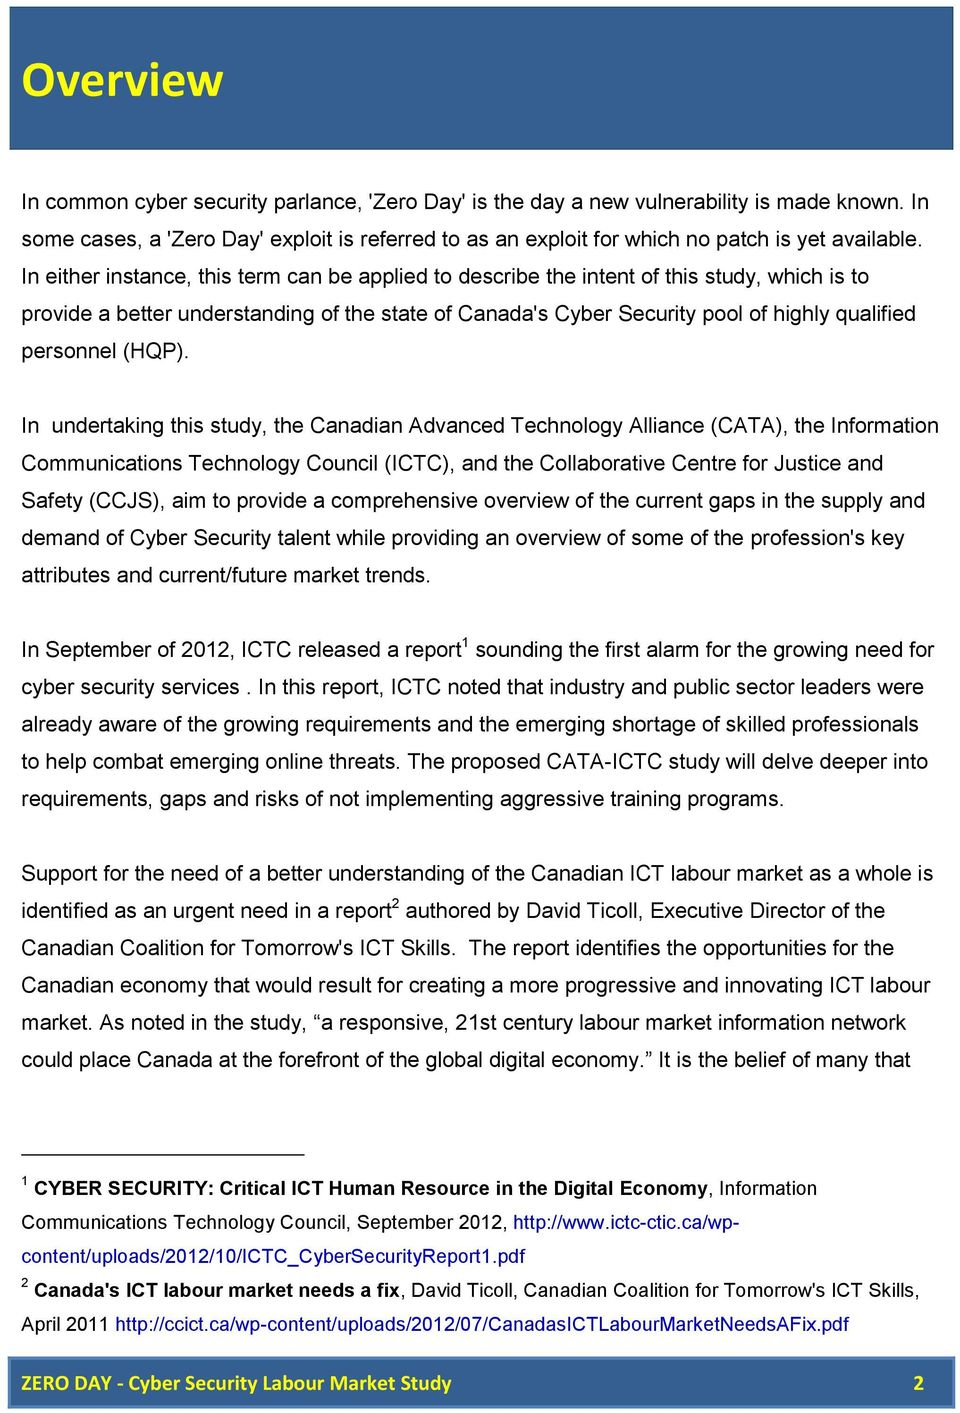 In either instance, this term can be applied to describe the intent of this study, which is to provide a better understanding of the state of Canada's Cyber Security pool of highly qualified